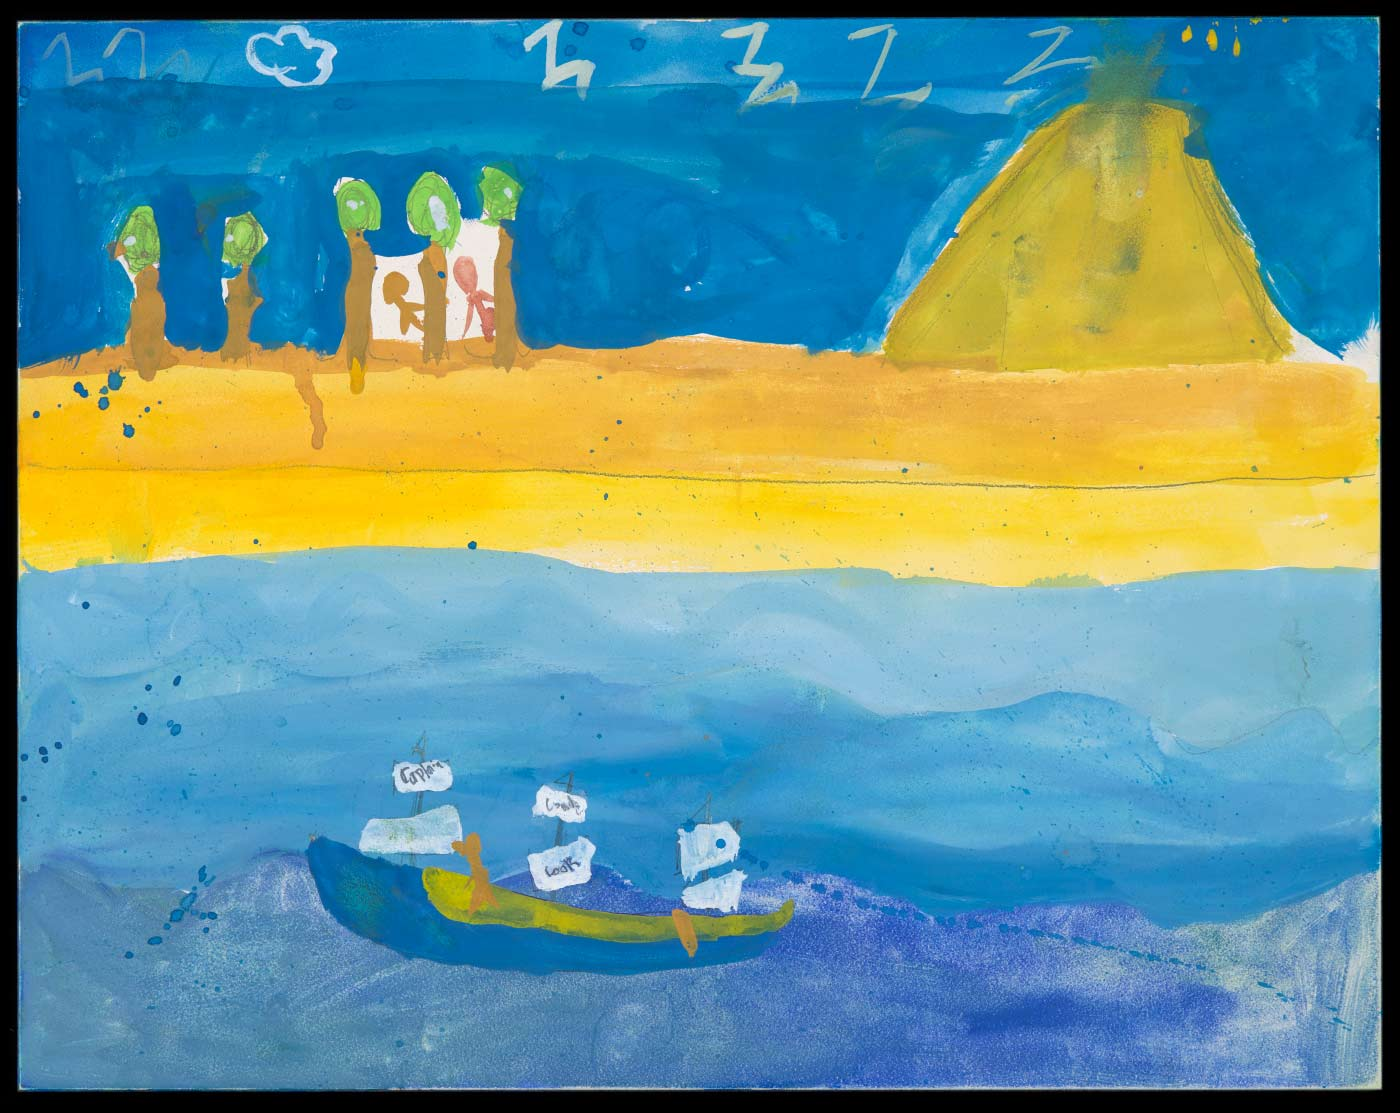 Painting on aquabord, depicting a boat and ocean on the lower half and a yellow shoreline with blue sky on the upper half. Trees and figures are painted in the upper left corner and a yellow mountain is painted in the upper right corner. - click to view larger image